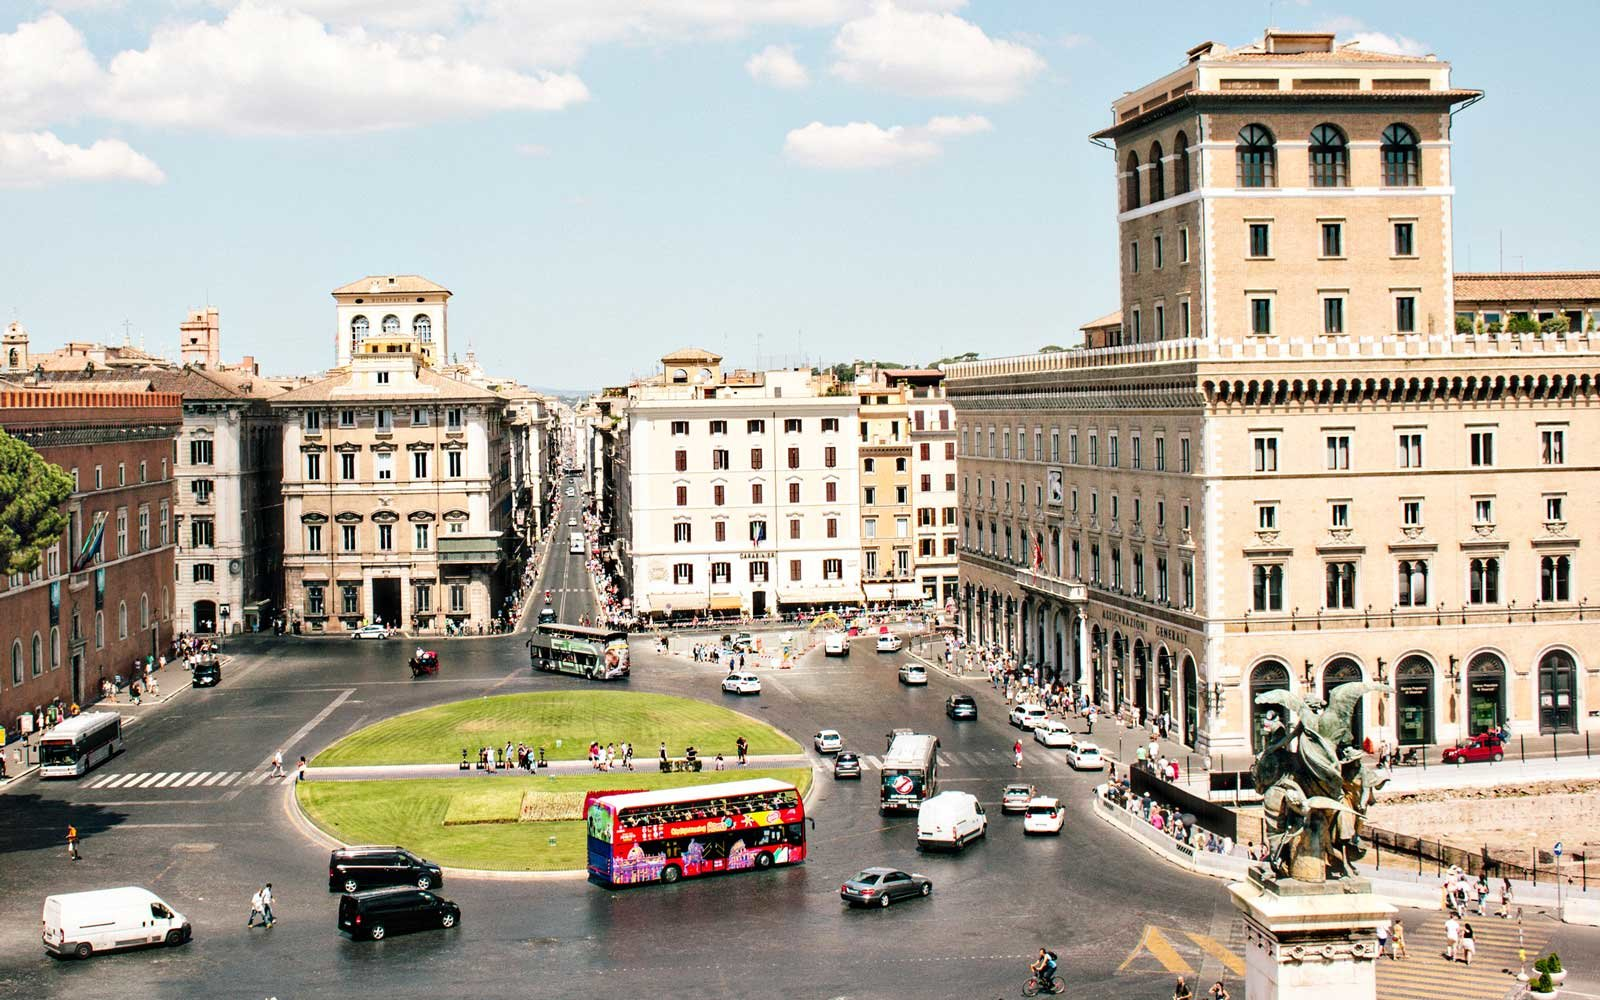 Cityscape of a very tourist area of Rome.